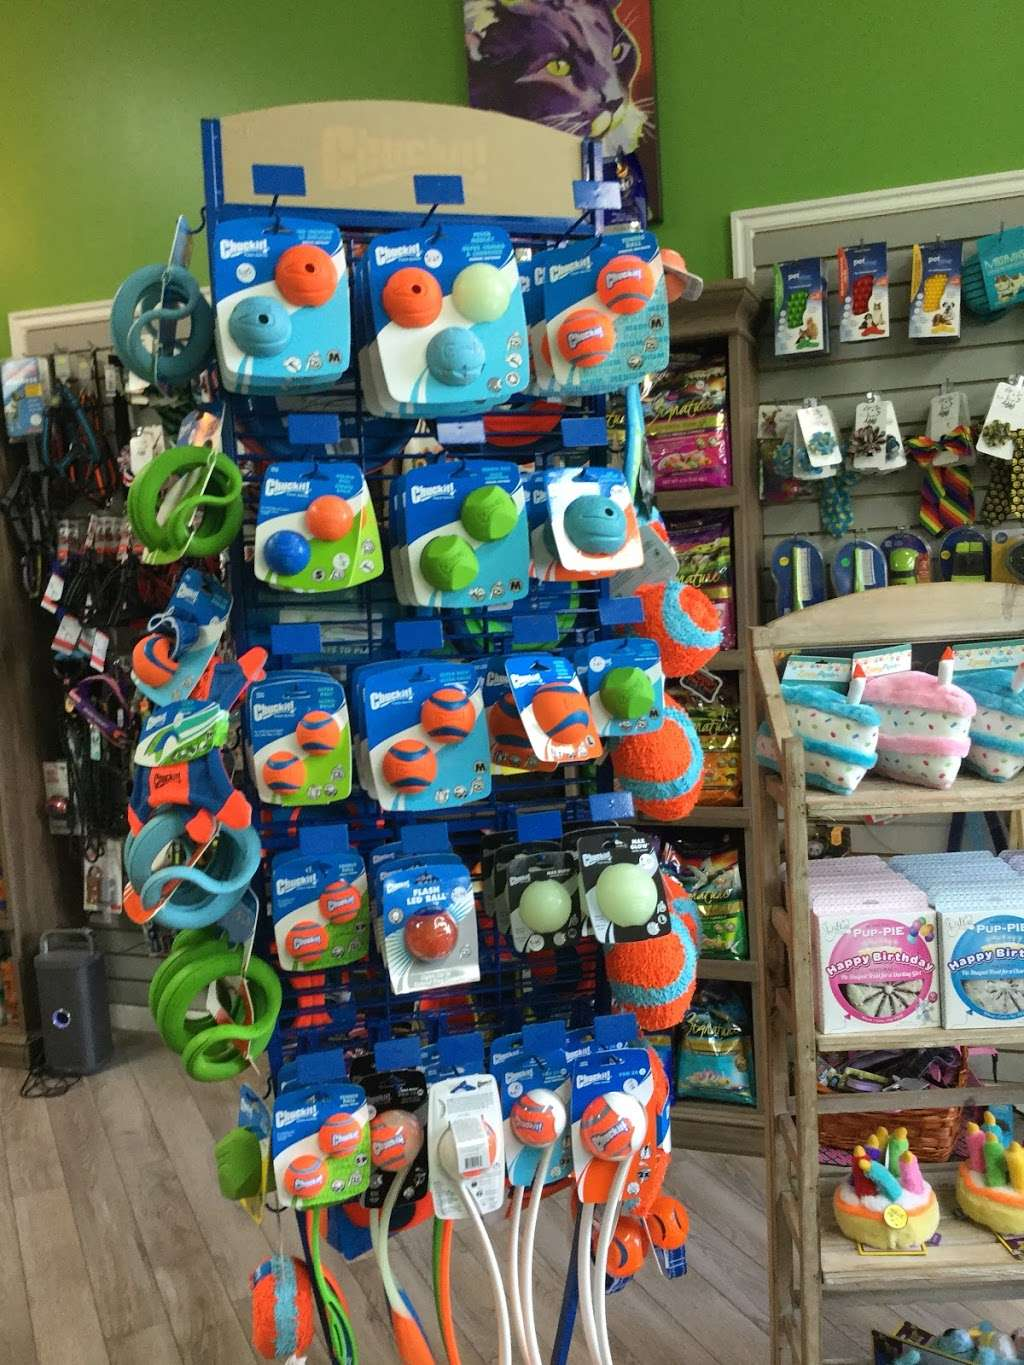 Bark And Purr Yonkers - clothing store    Photo 8 of 10   Address: 1 Pierpointe St, Yonkers, NY 10701, USA   Phone: (914) 476-2275